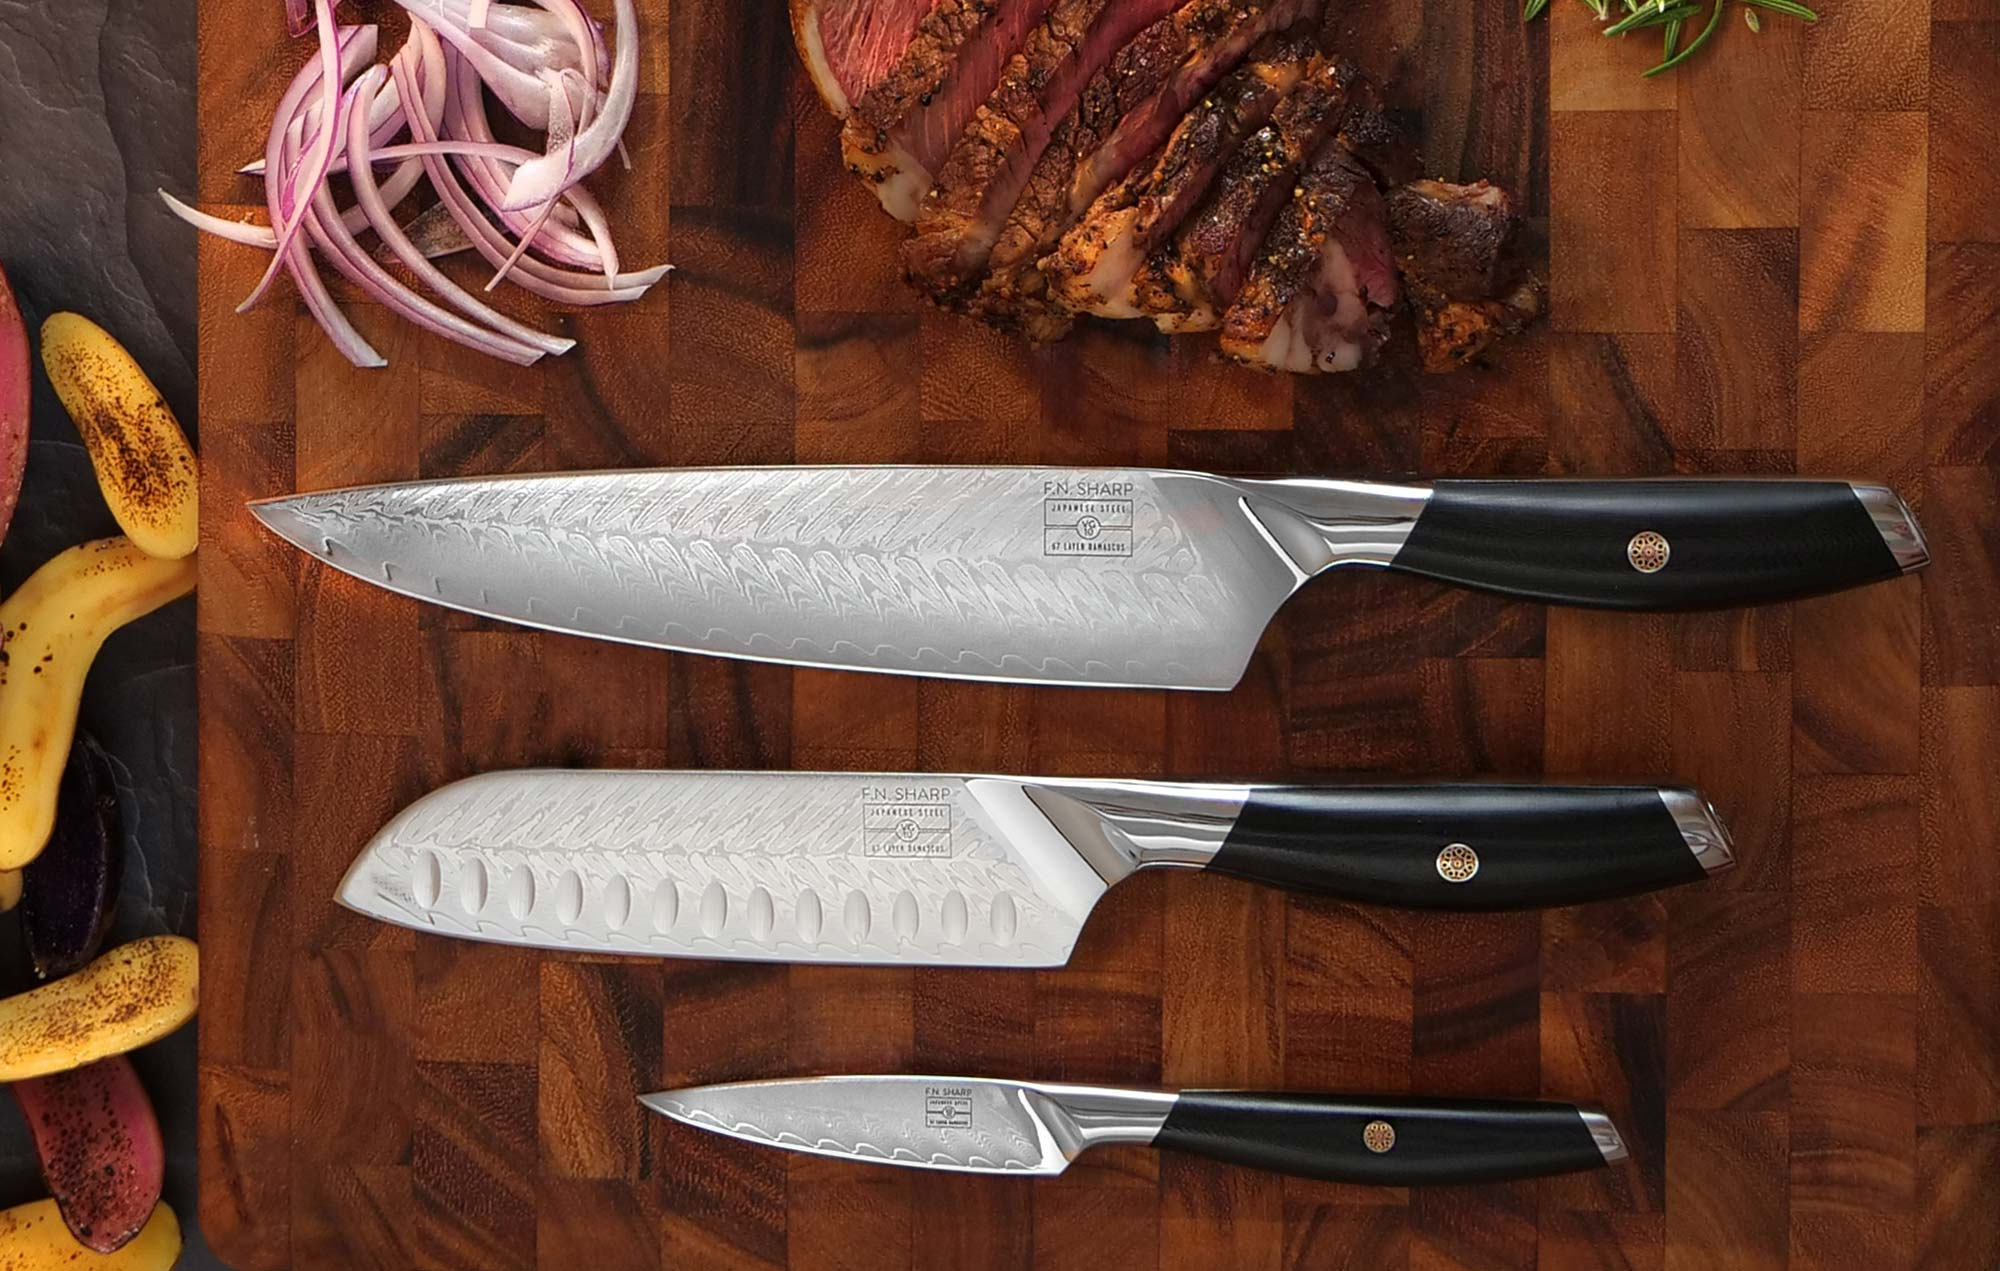 3 Knives on cutting board